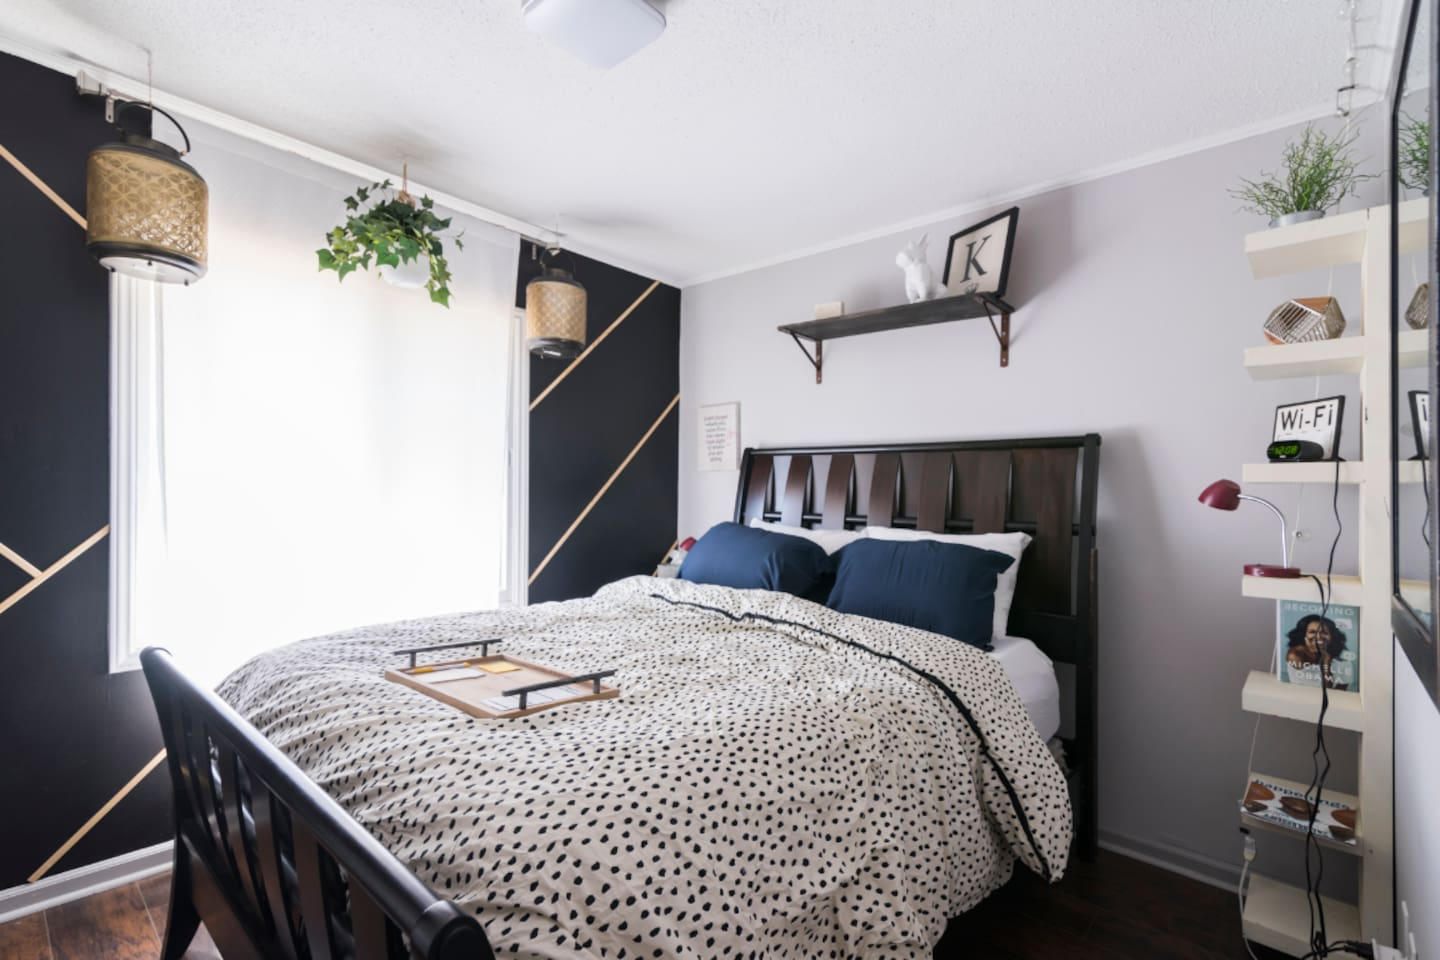 Hipster room w/ feature wall and hanging lanterns